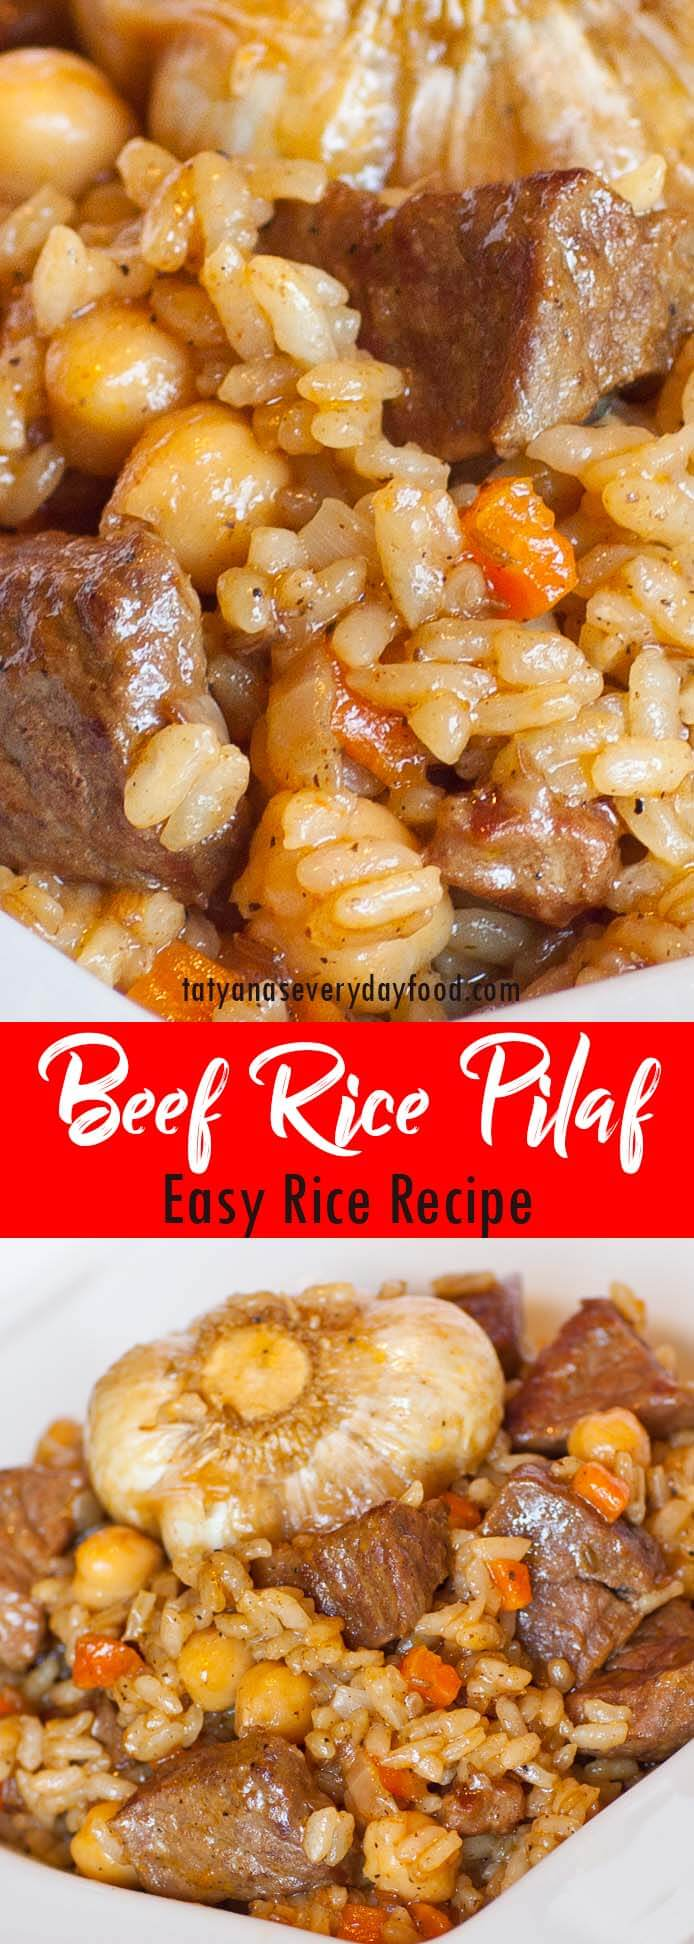 Beef Rice Pilaf Plov video recipe